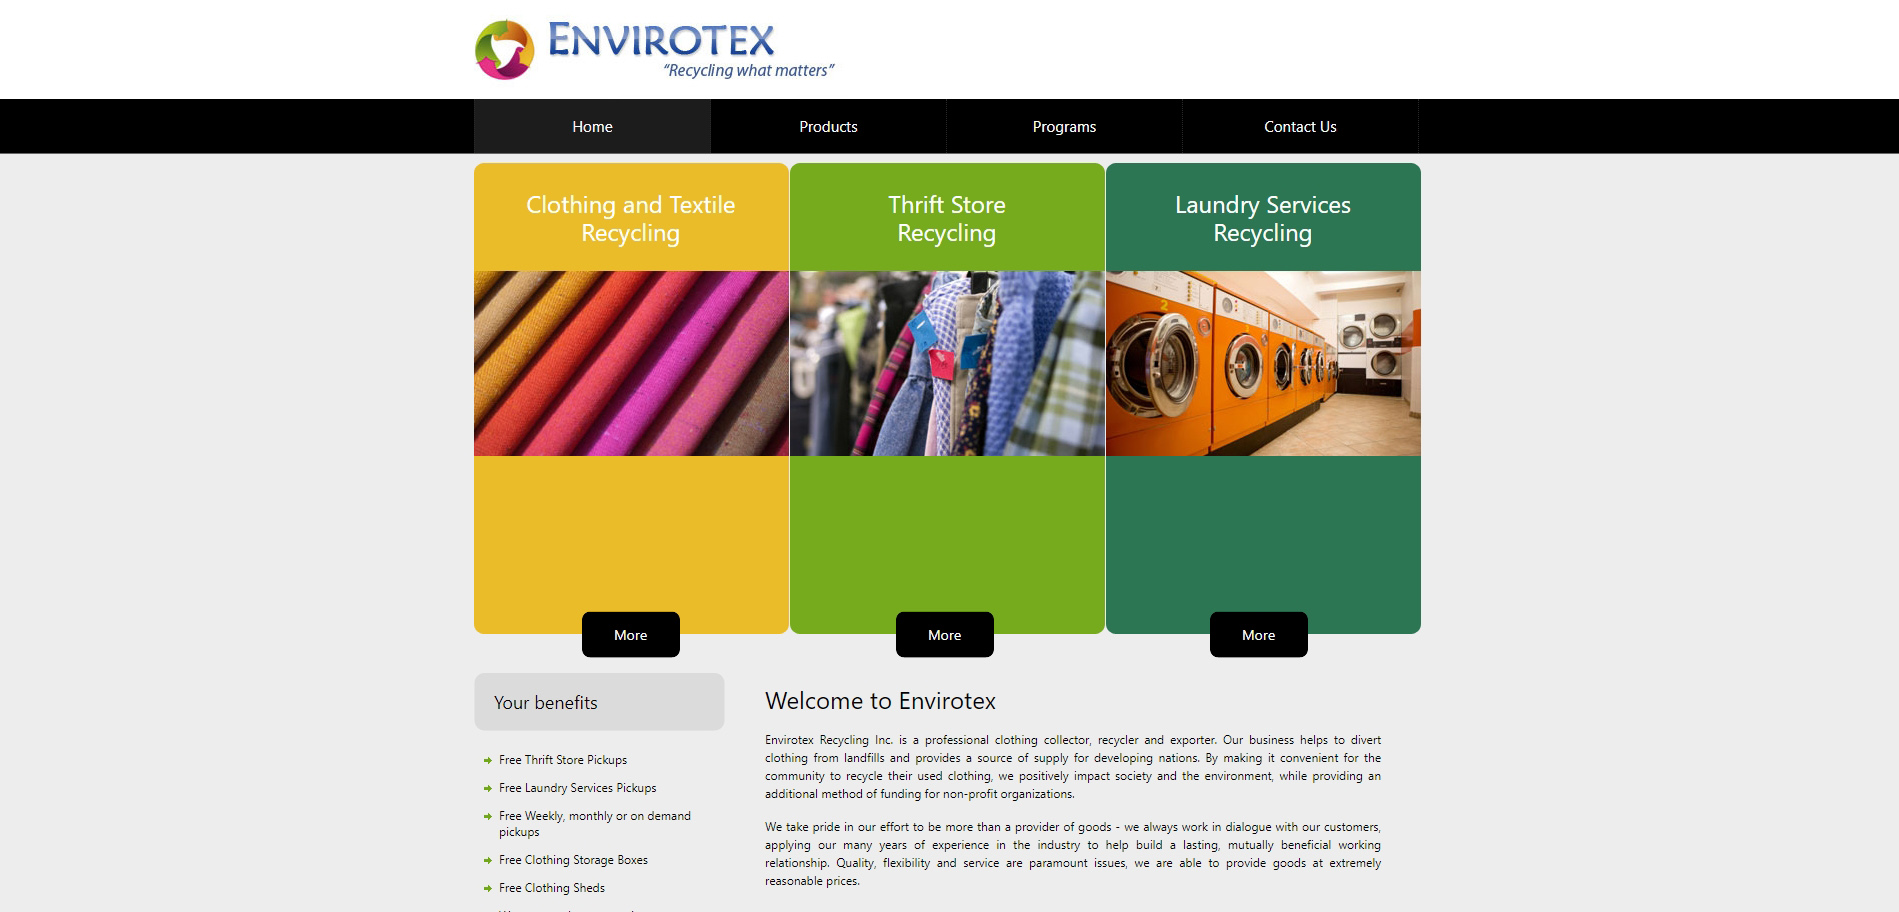 envirotexinc-clothing-recycling-thewebmiracle